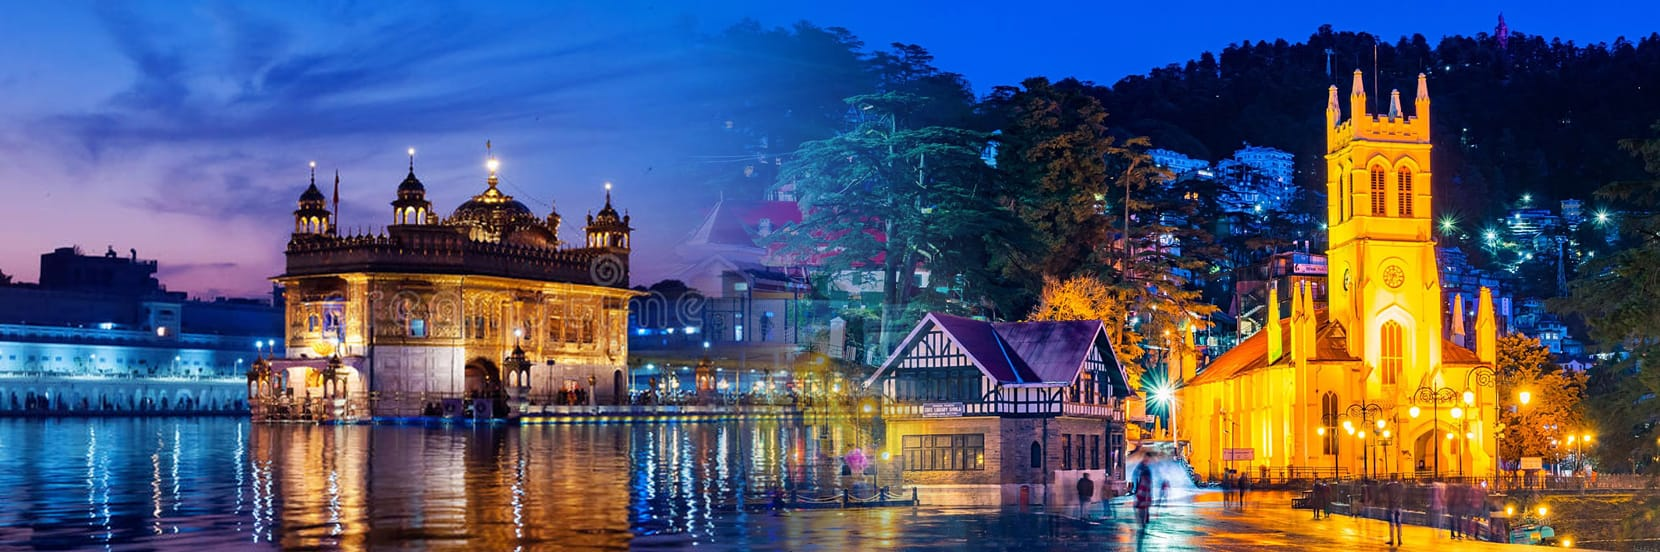 Himachal Pradesh Tour Packages From Amritsar